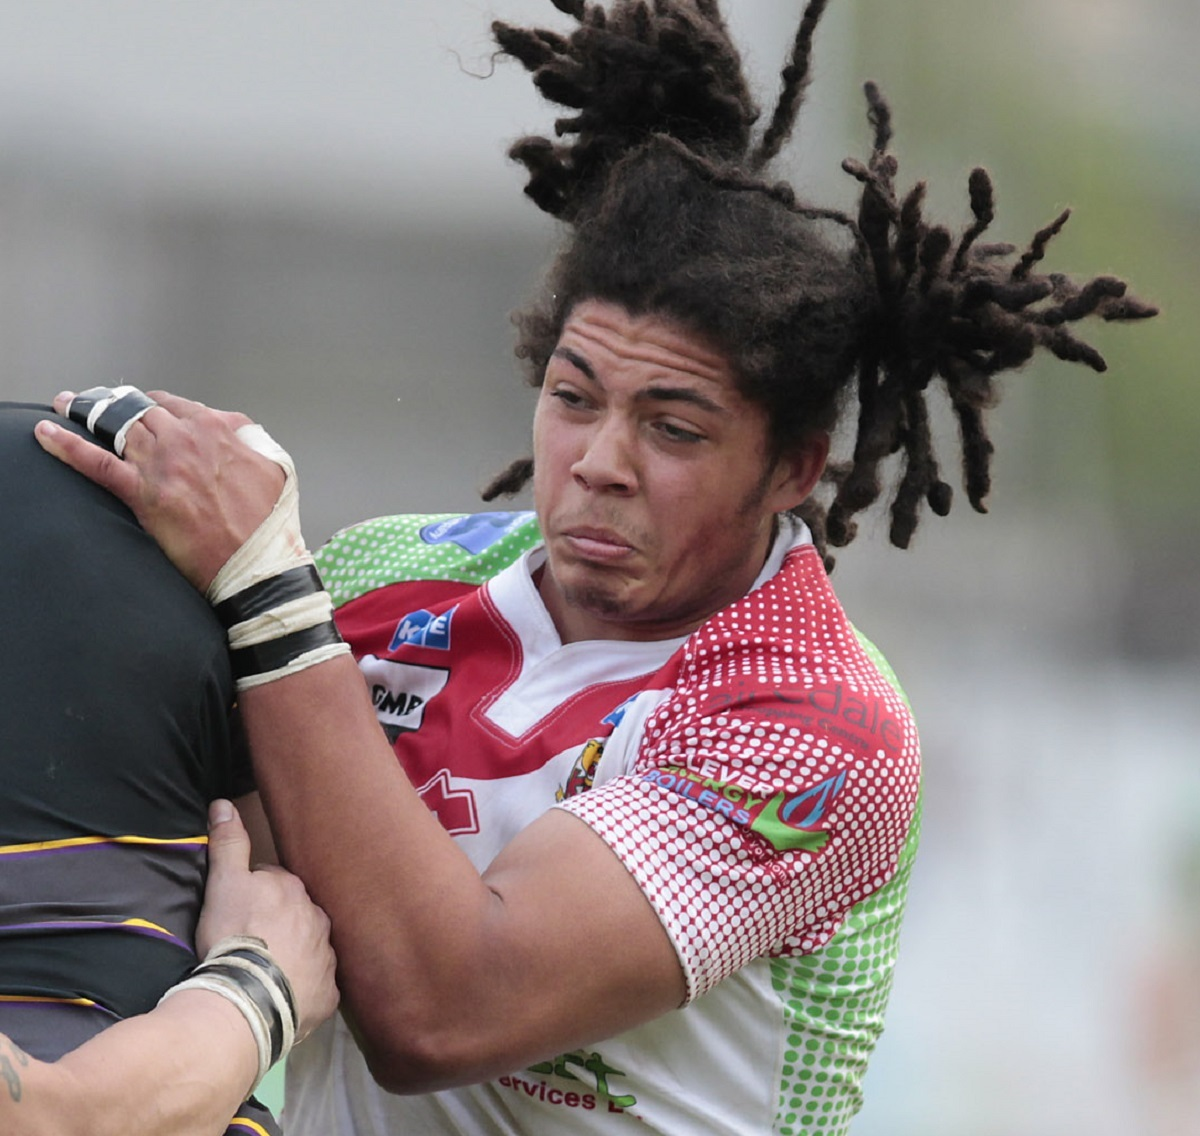 Jamel Goodall, pictured during his spell at Keighley, has signed a one-year deal to play for the Bulls